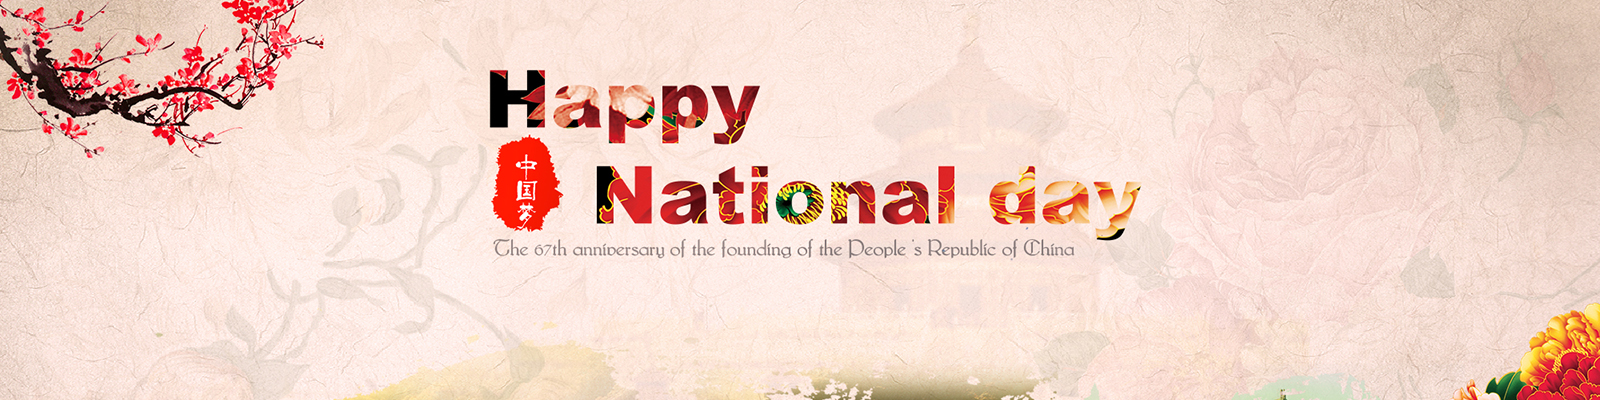 national day peacemounts